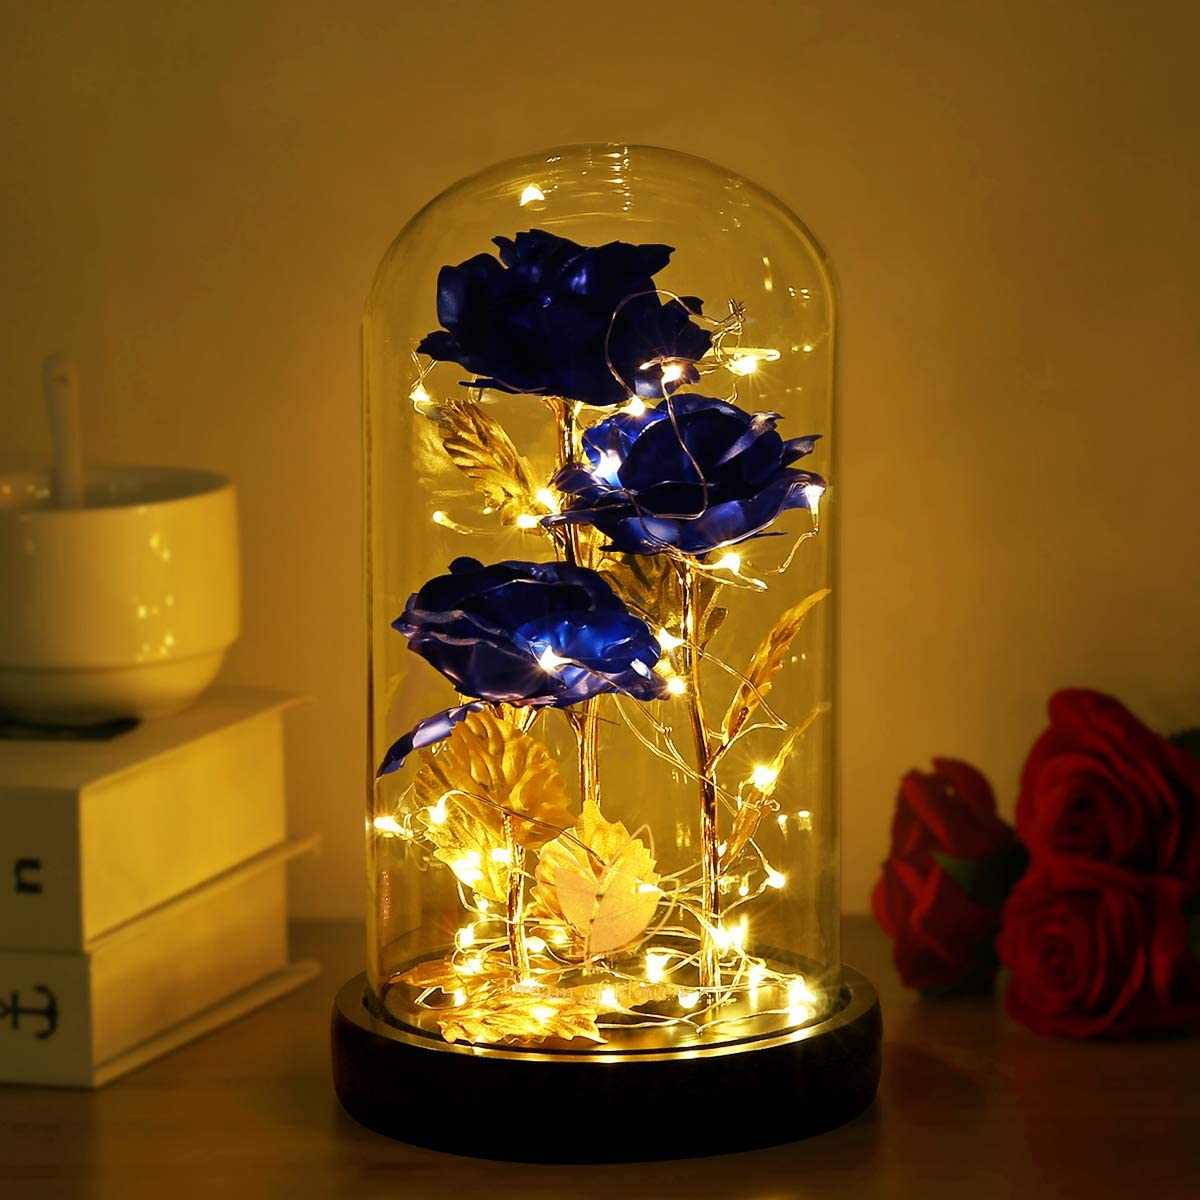 Galaxy Rose Artificial Rose, Colorful Gold Foil Rose Enchanted Red Rose, Beauty and The Beast Rose in Glass Dome with Lights for Home Decor Unique Gifts for Women (Blue)